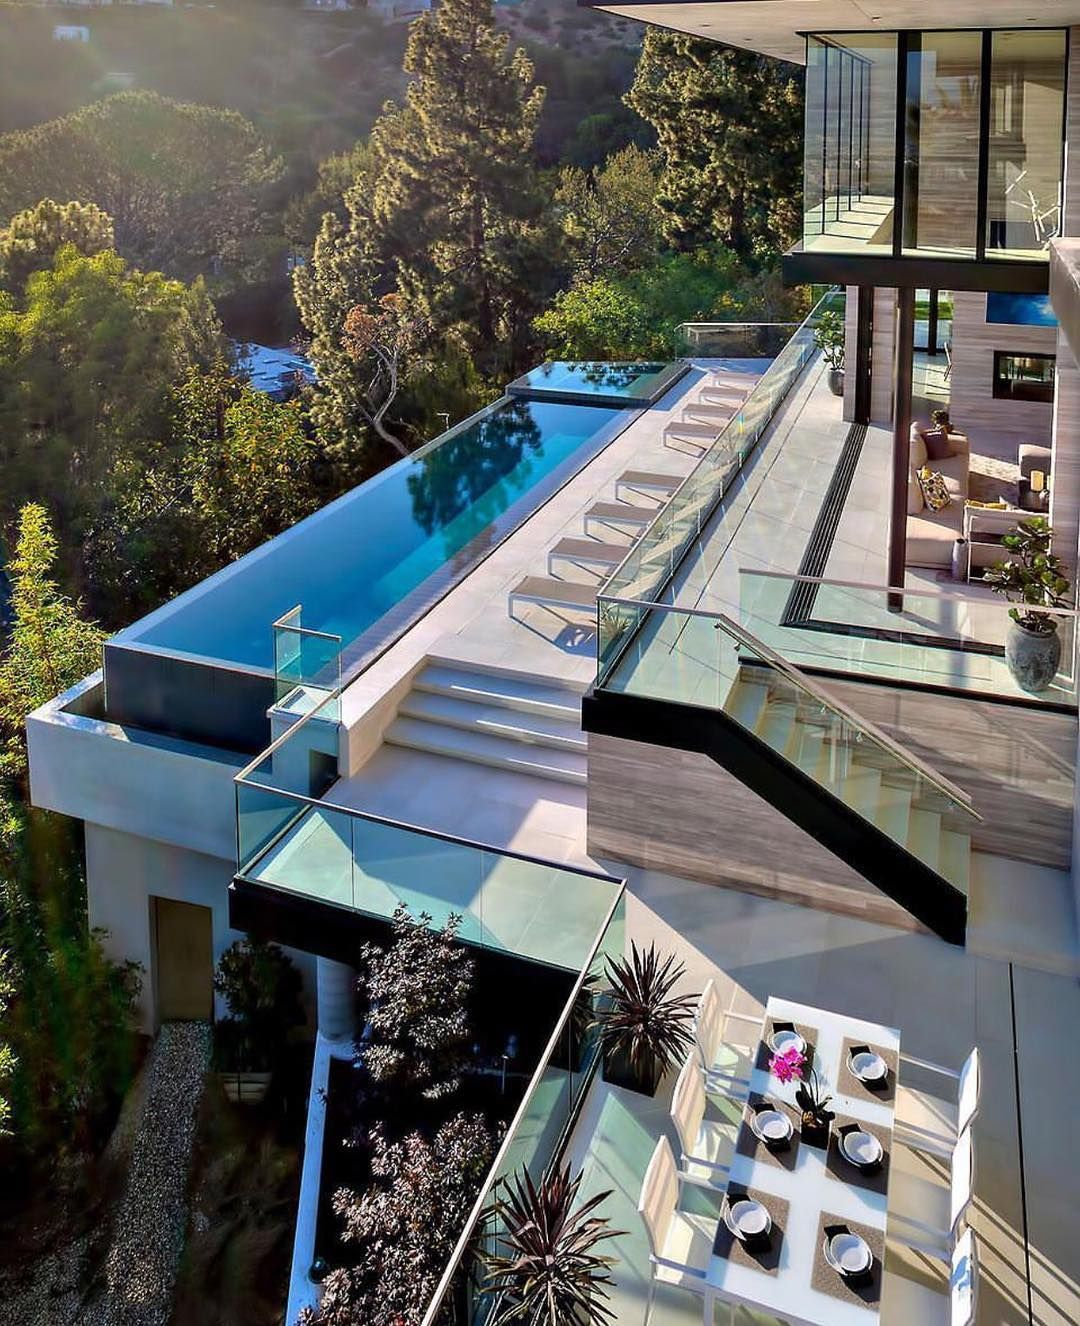 St. Ives Residence by Gaskin Design Architects, #LosAngeles #USA ...